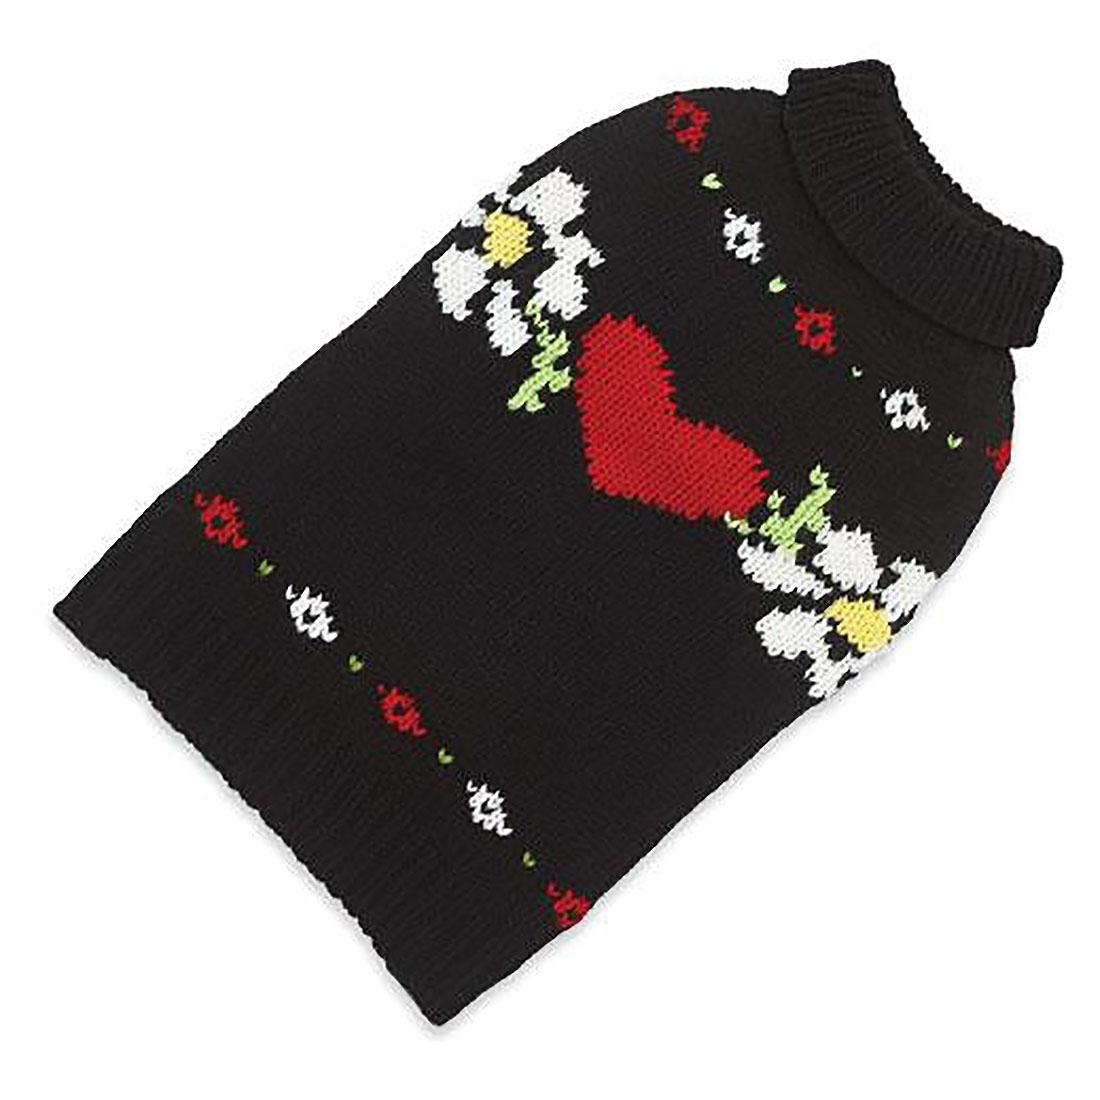 Hand Knit Dog Sweater by Up Country - Hearts and Flowers